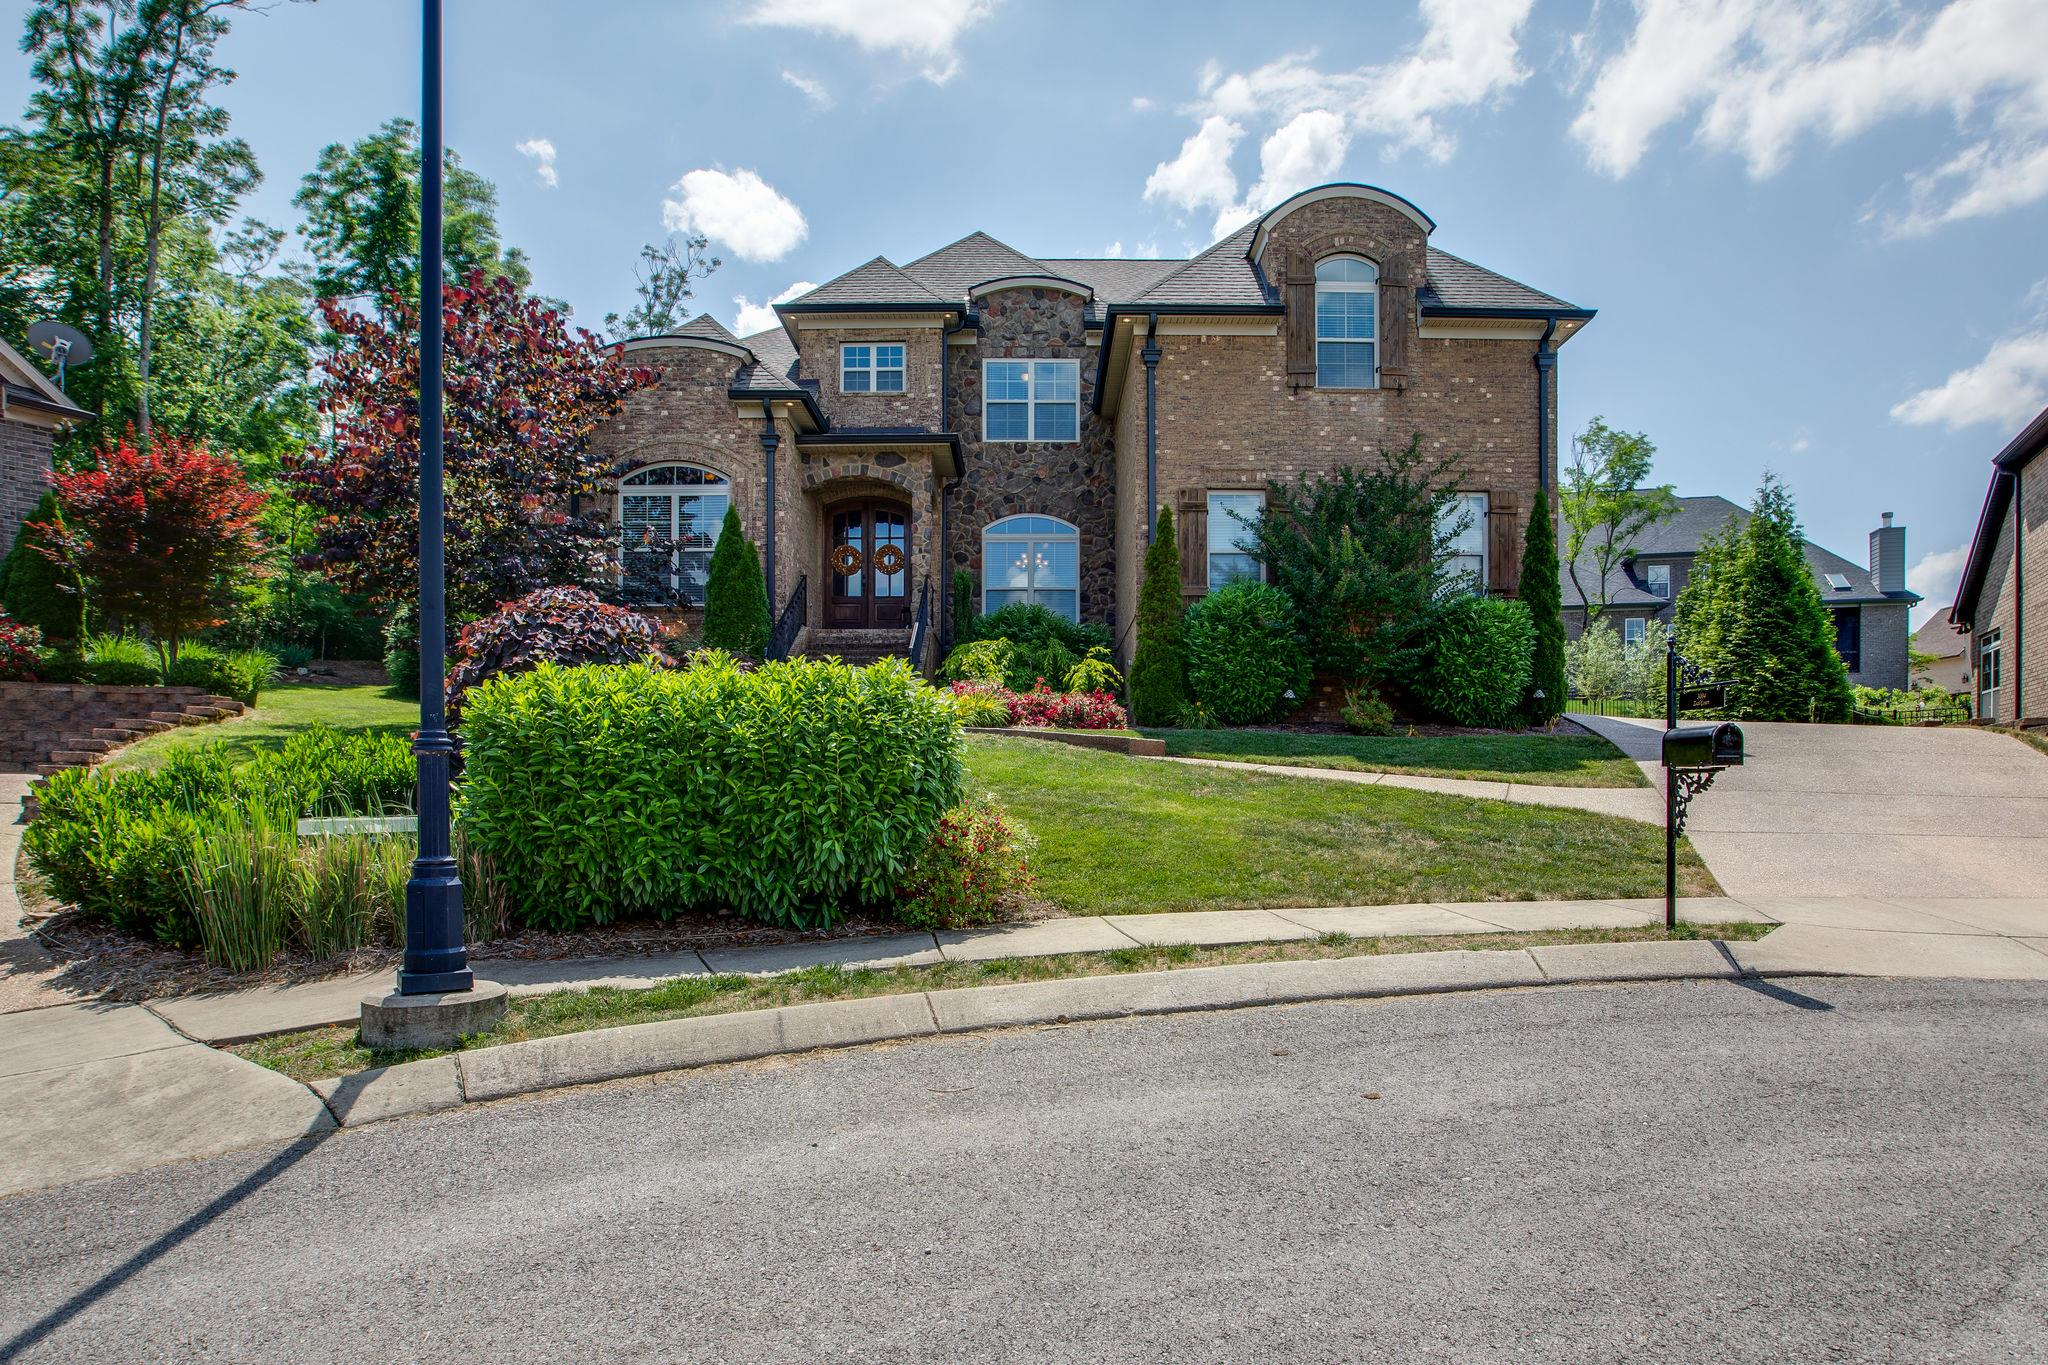 3004 Zeal Ct, Spring Hill, Tennessee